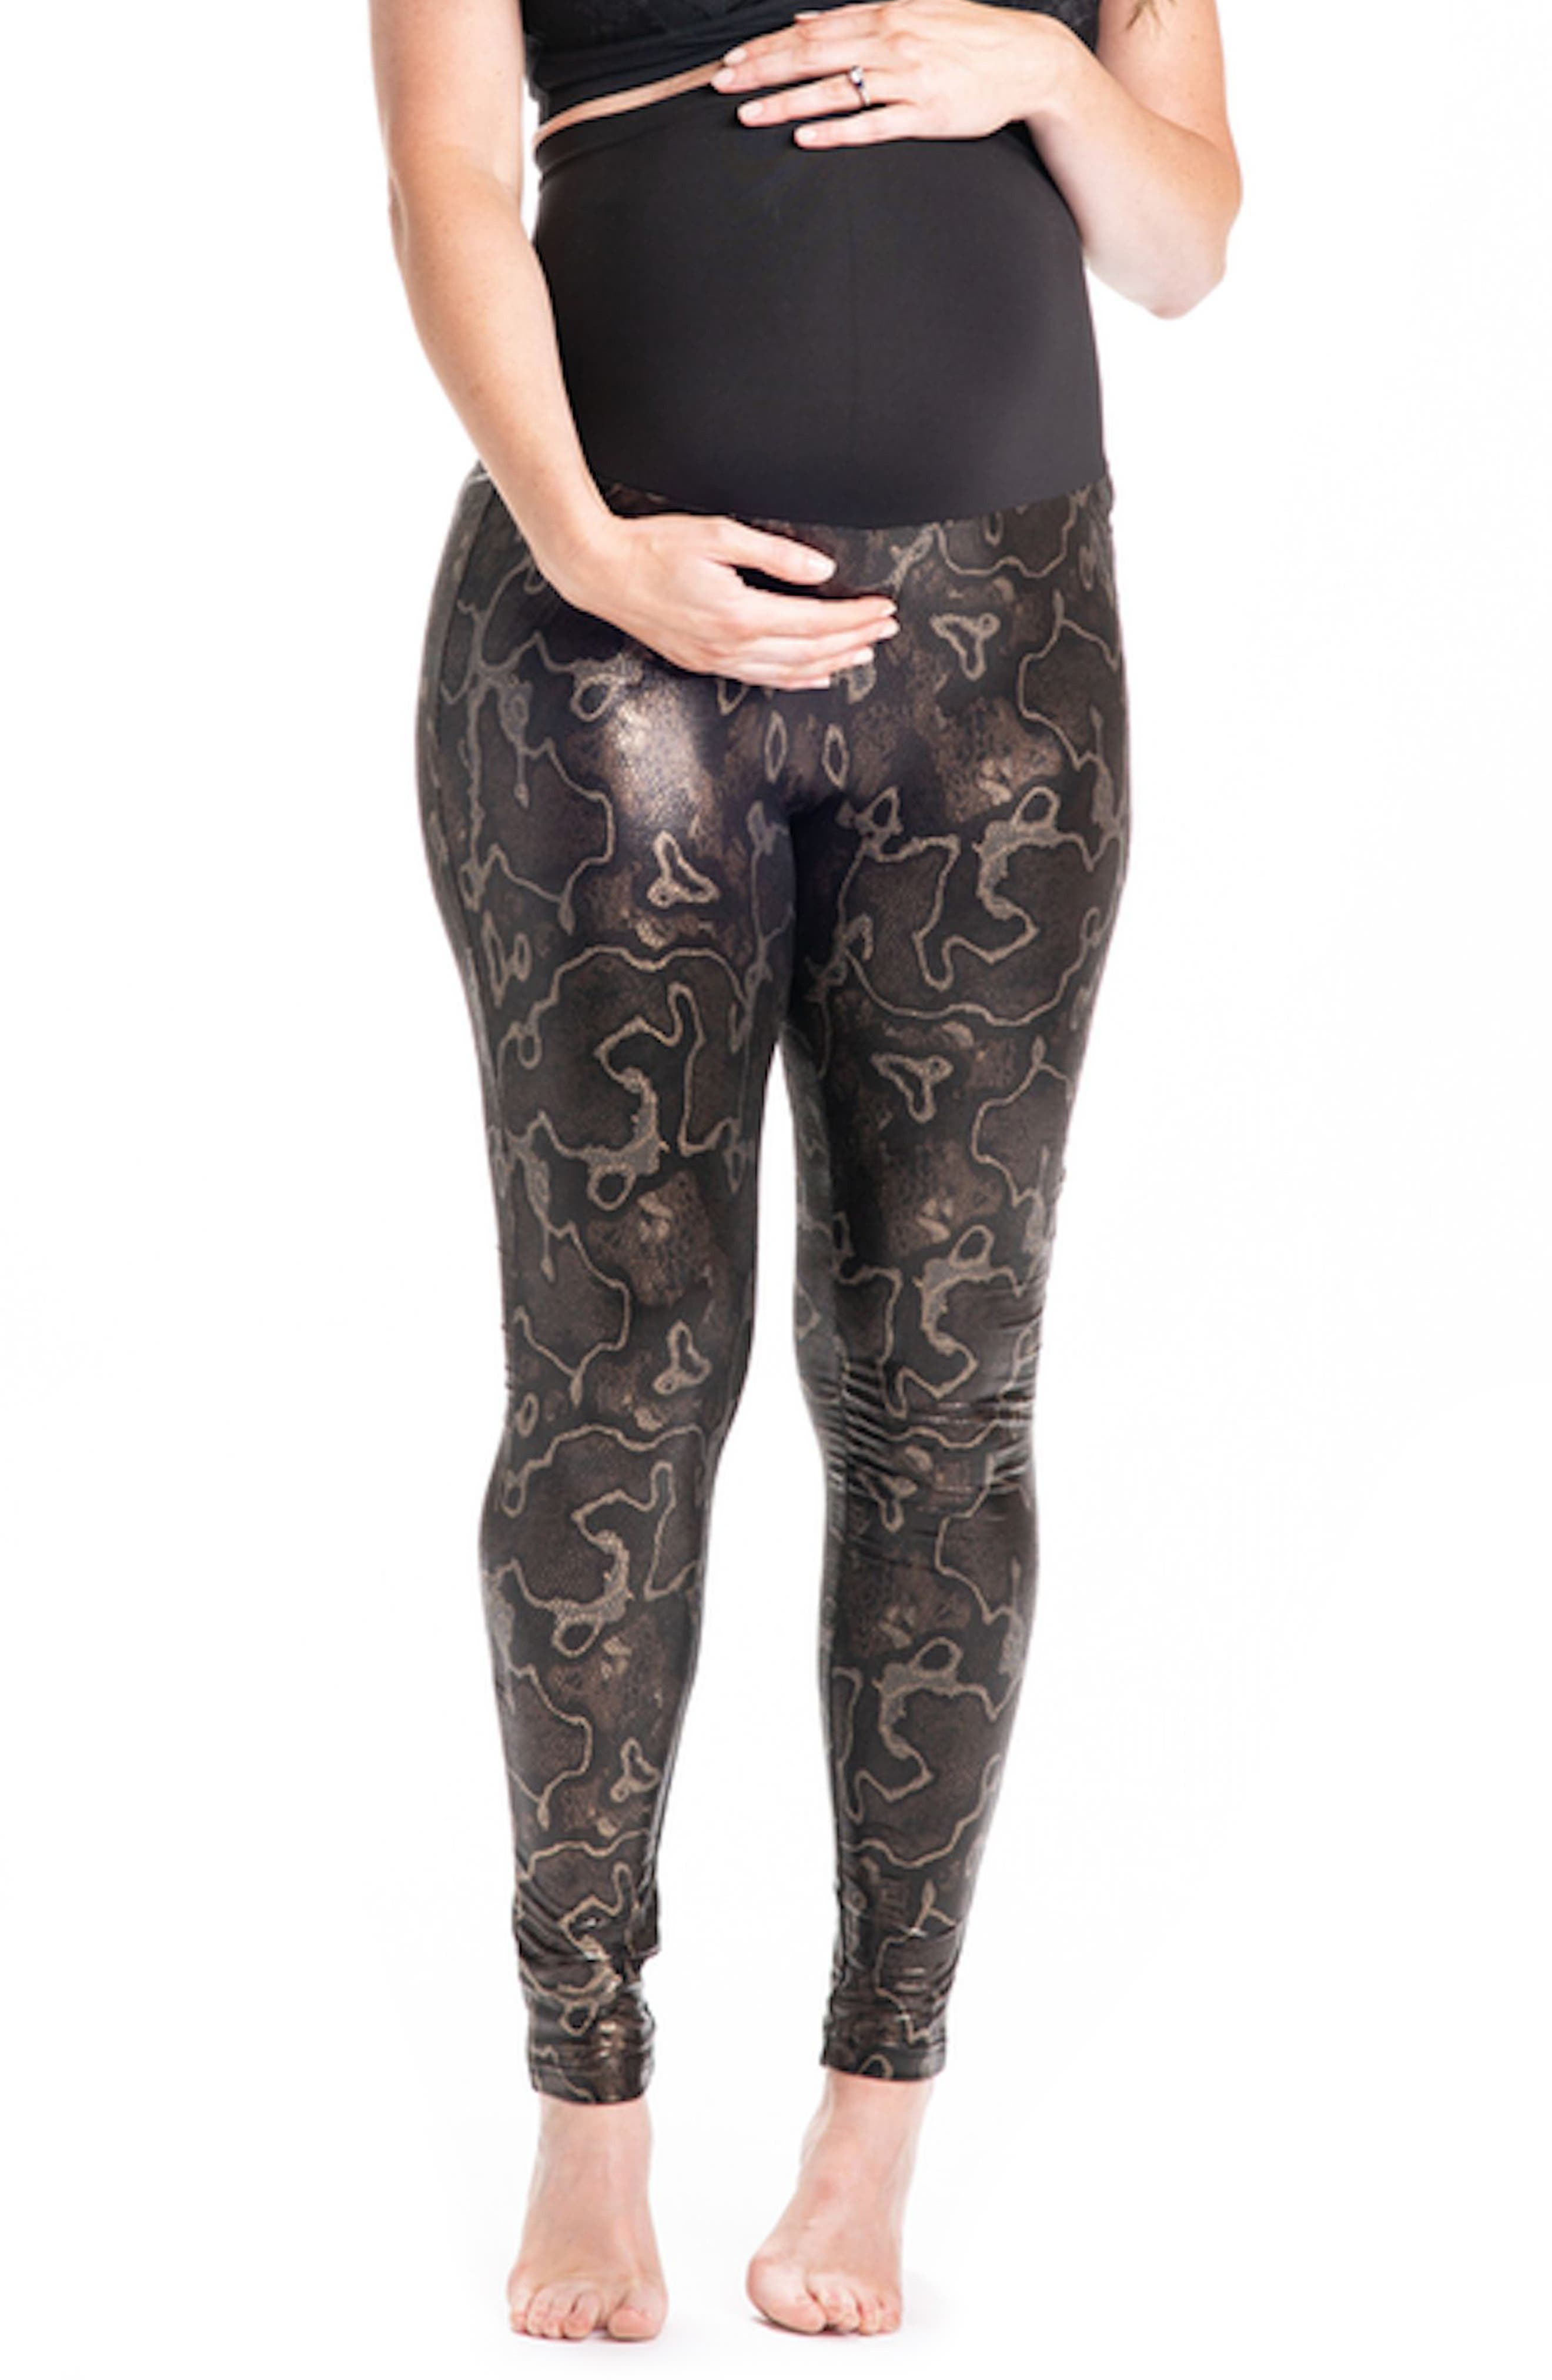 Boa Print Maternity Leggings,                         Main,                         color, Dark Brown